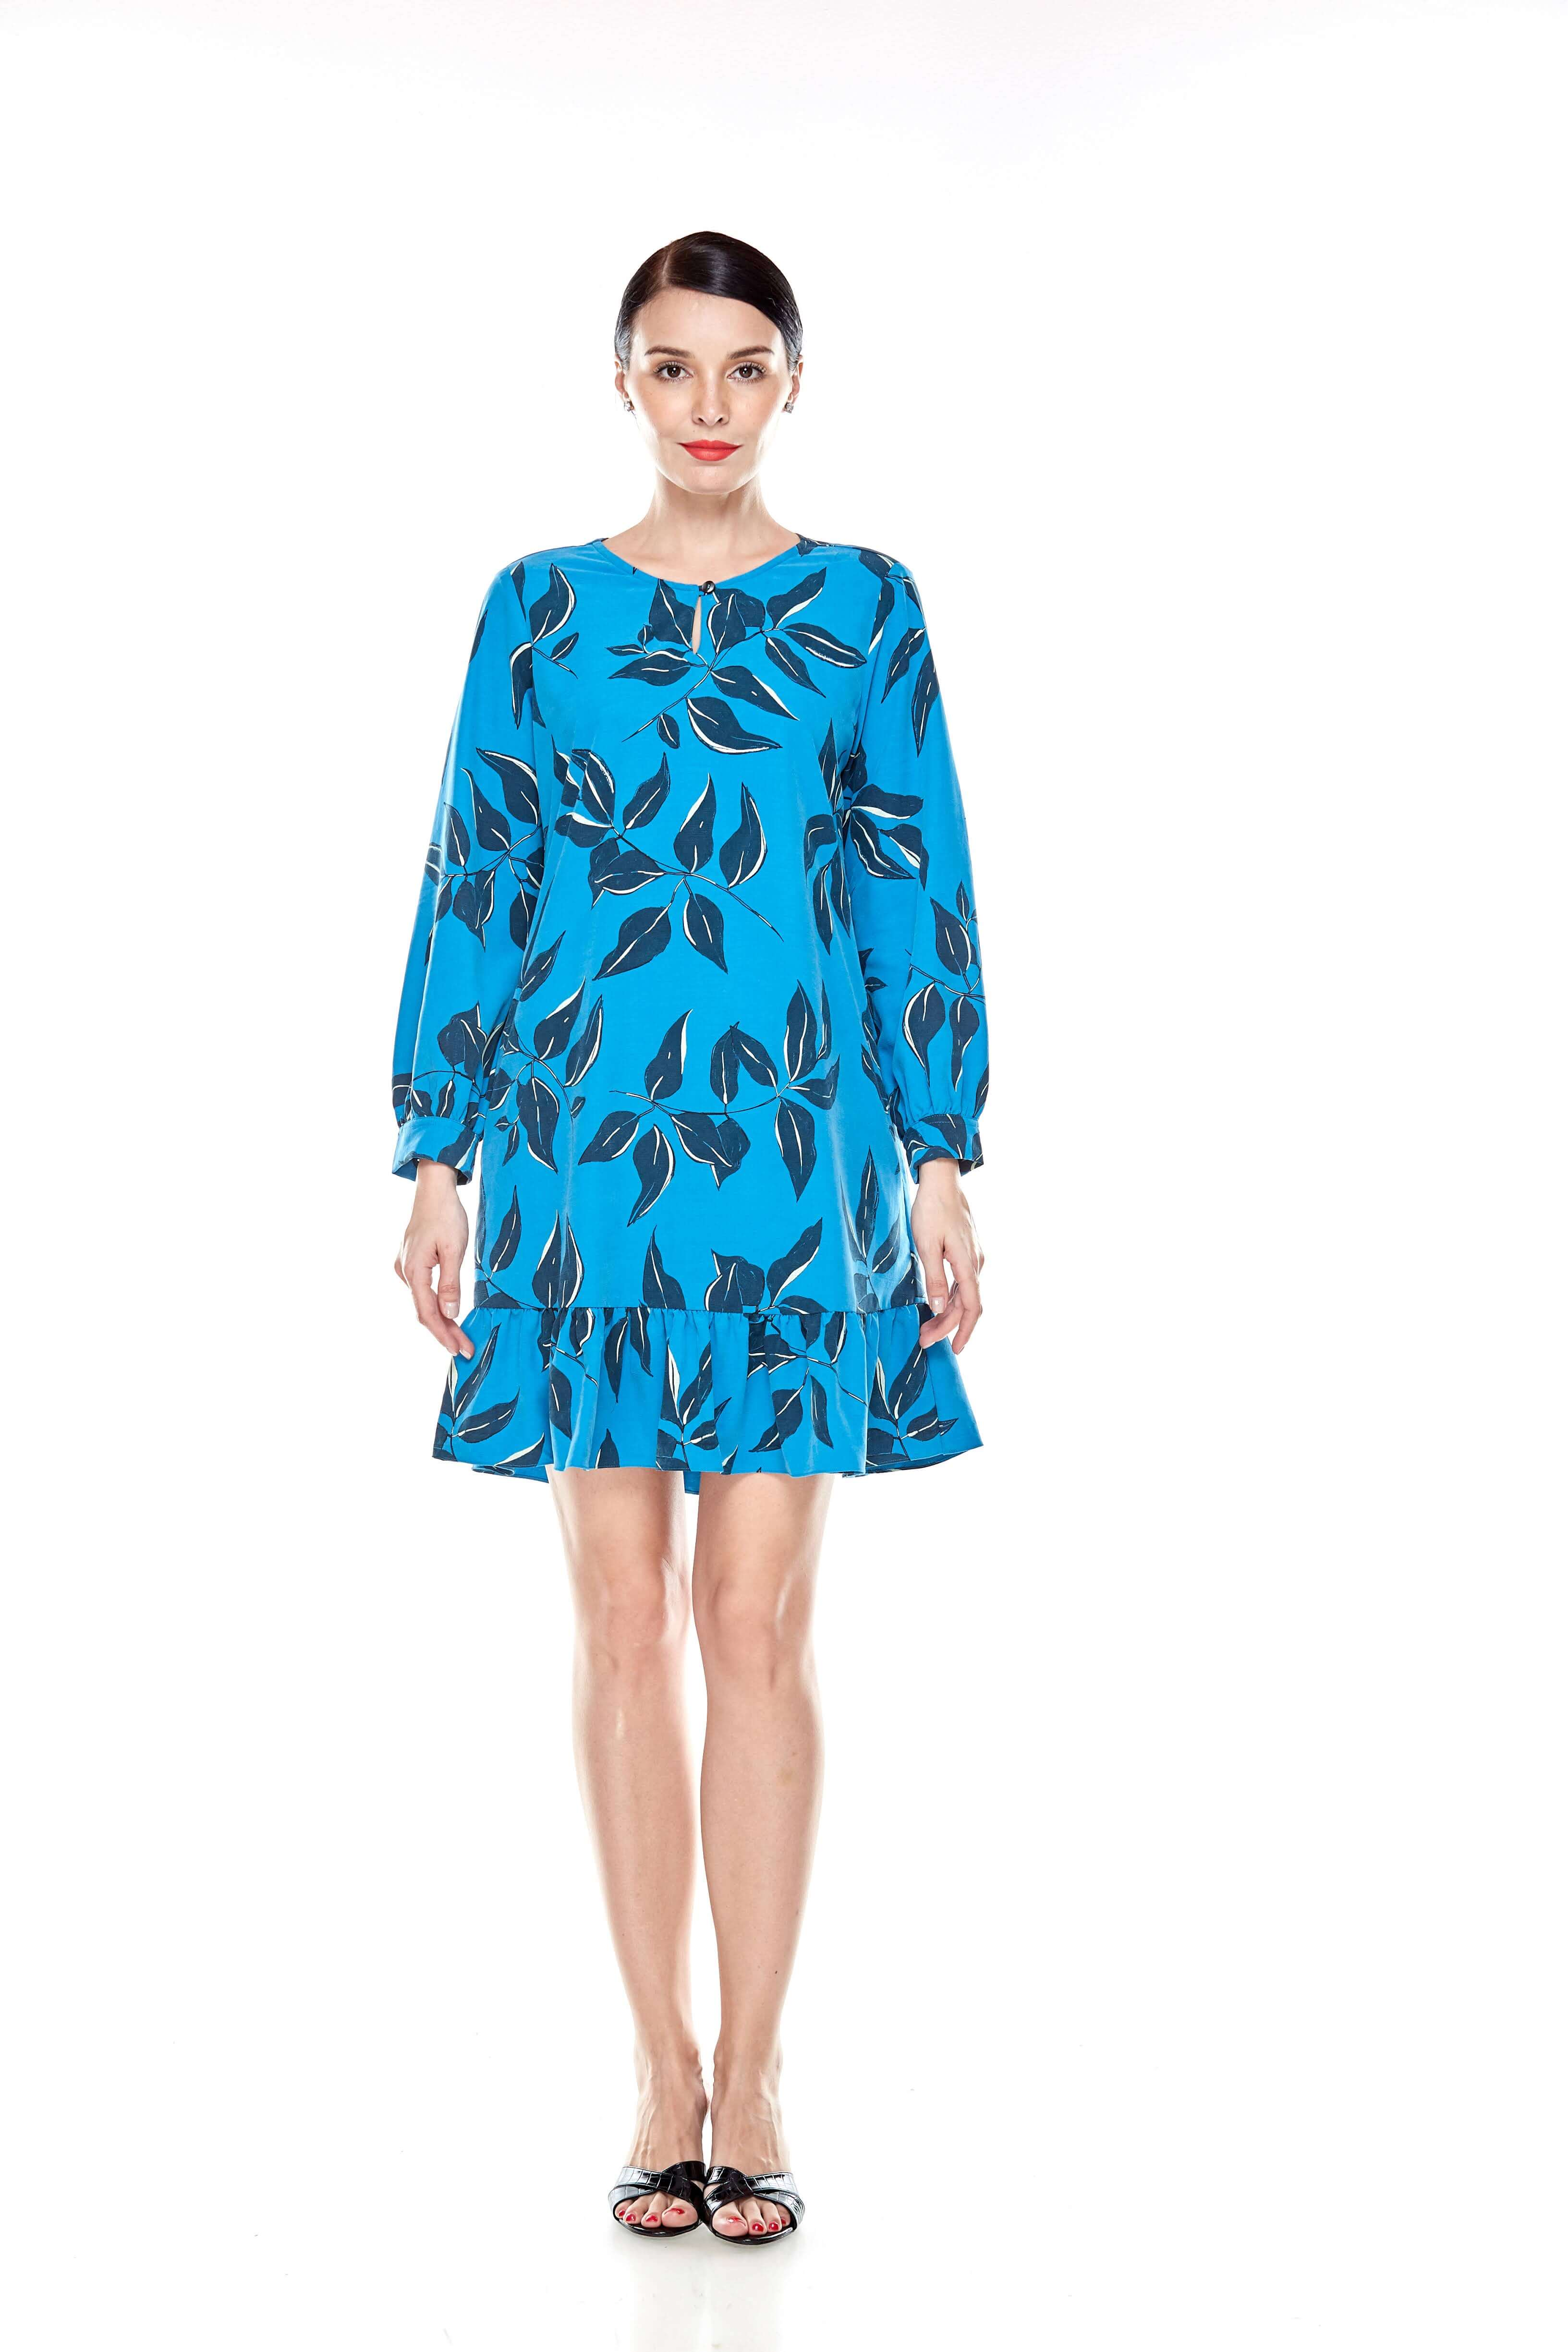 Mosaic Blue Printed Tunic With Bow Sleeves (2)